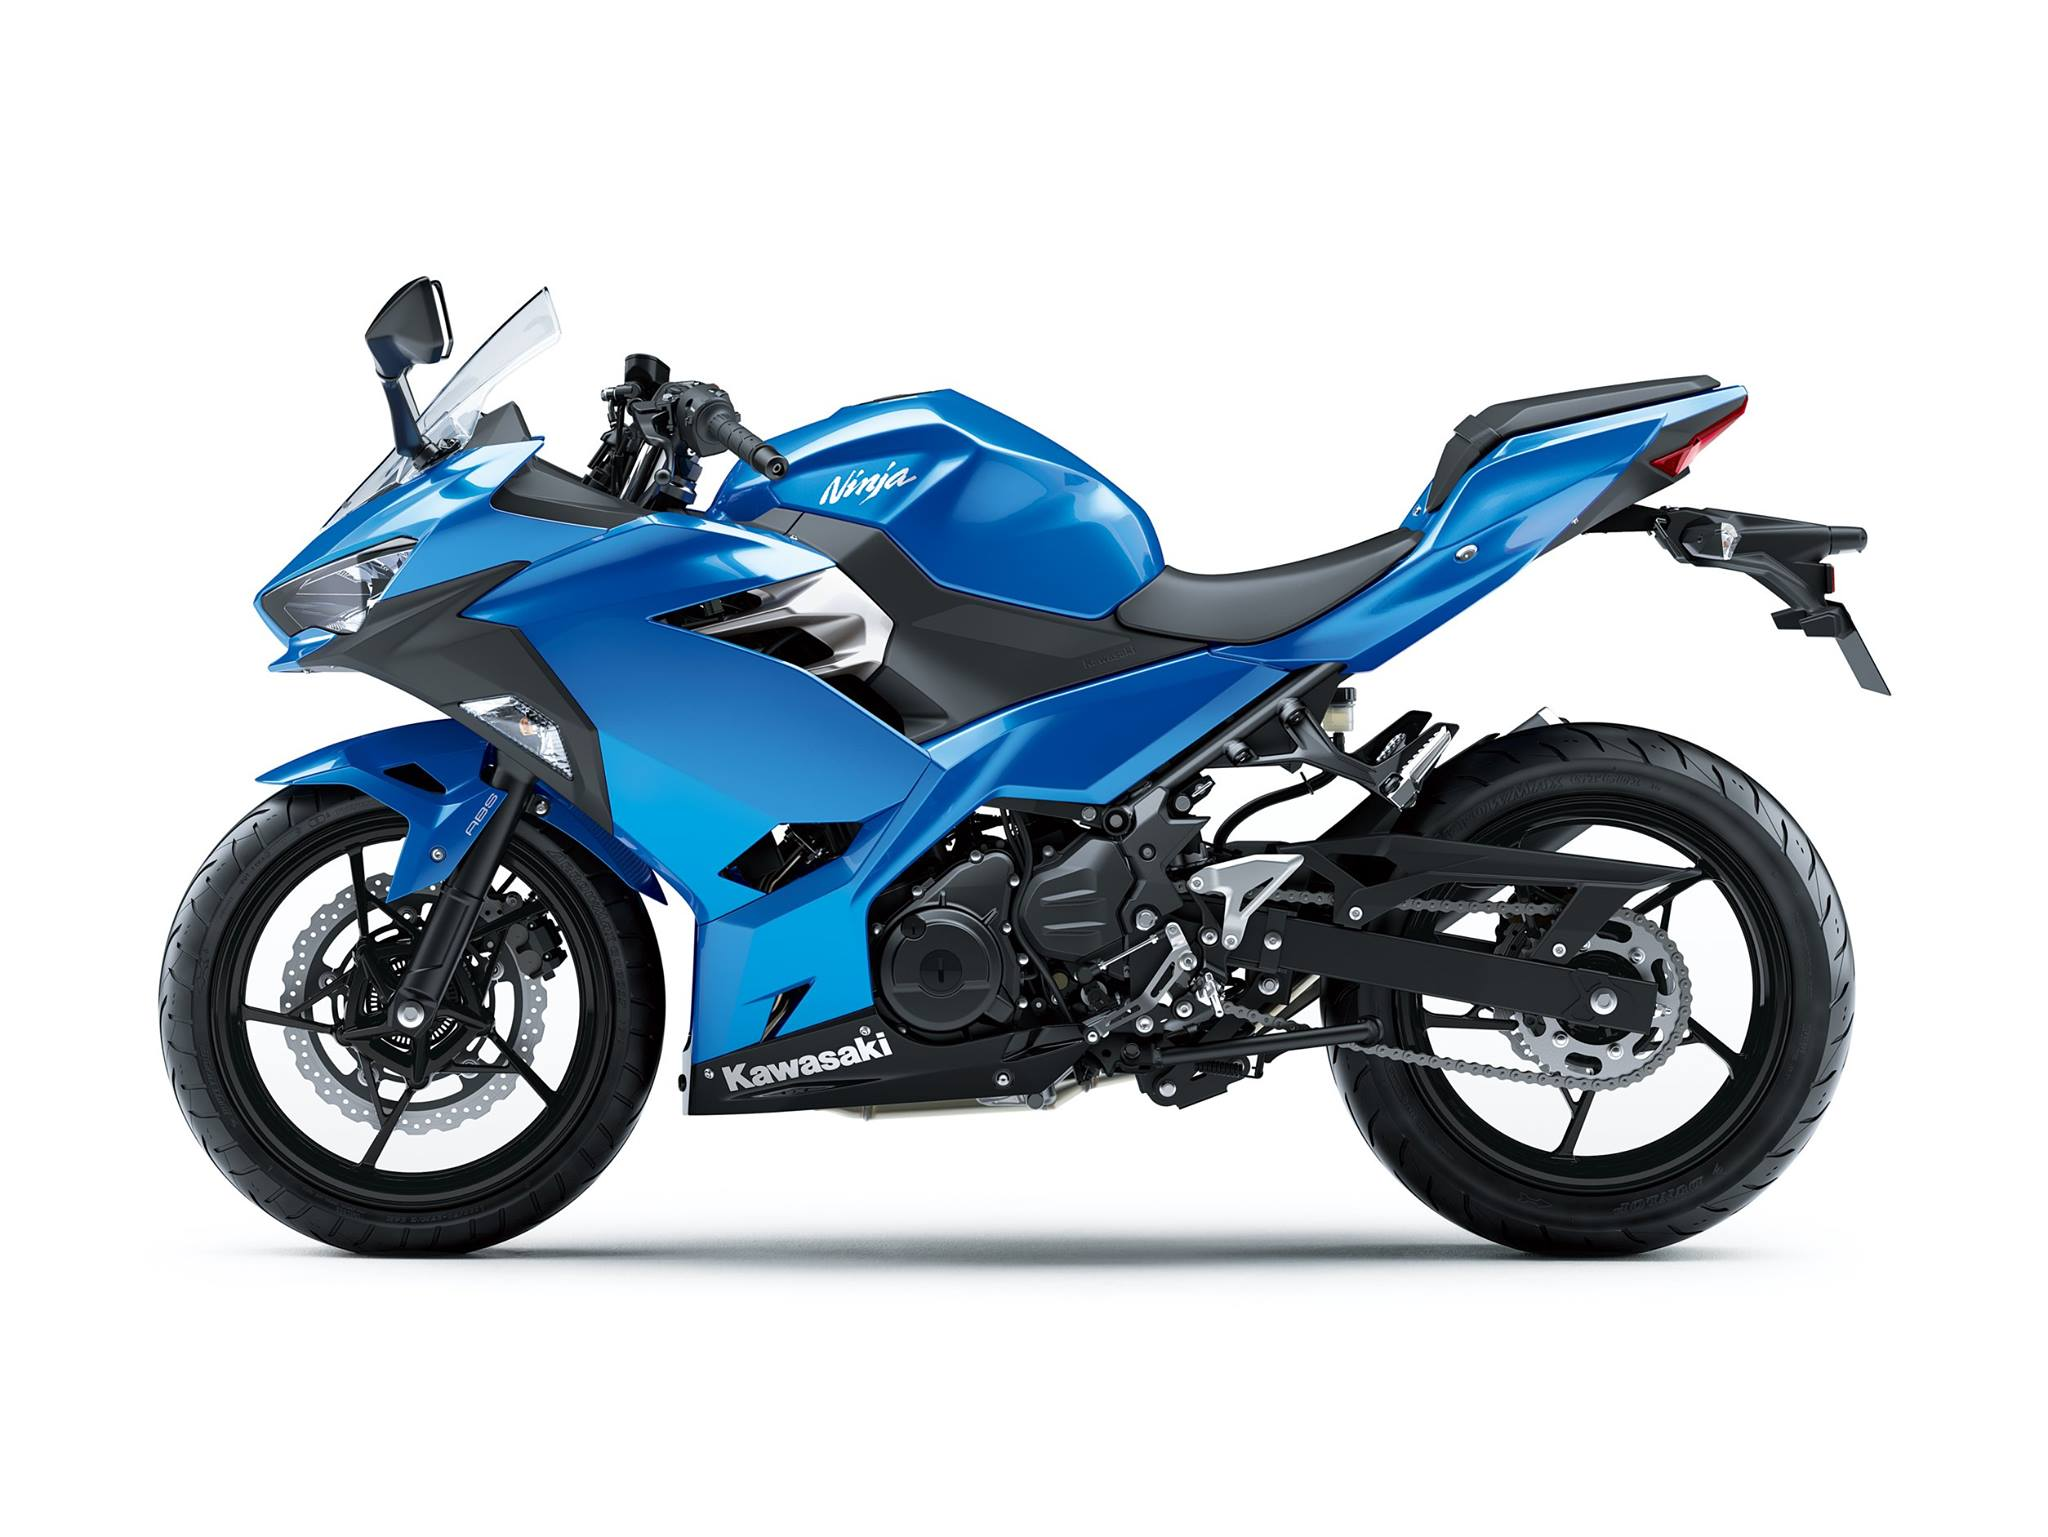 All New Kawasaki Ninja 250 FI Versi 2018 Warna biru 1 p7